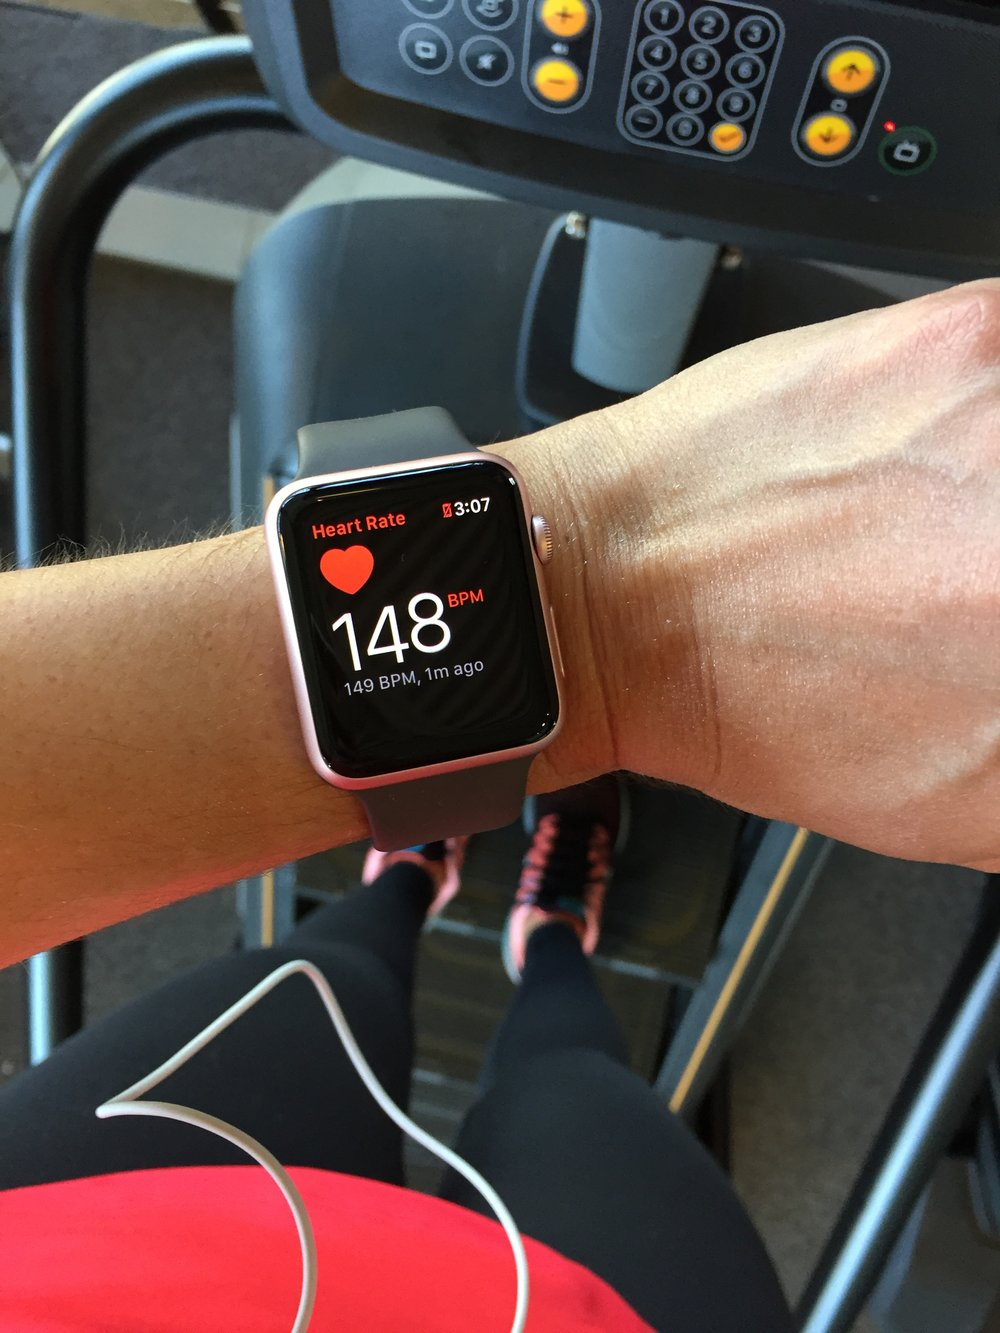 apple-watch-heart-rate-lauren-schwaiger-healthy-living-blog.jpg